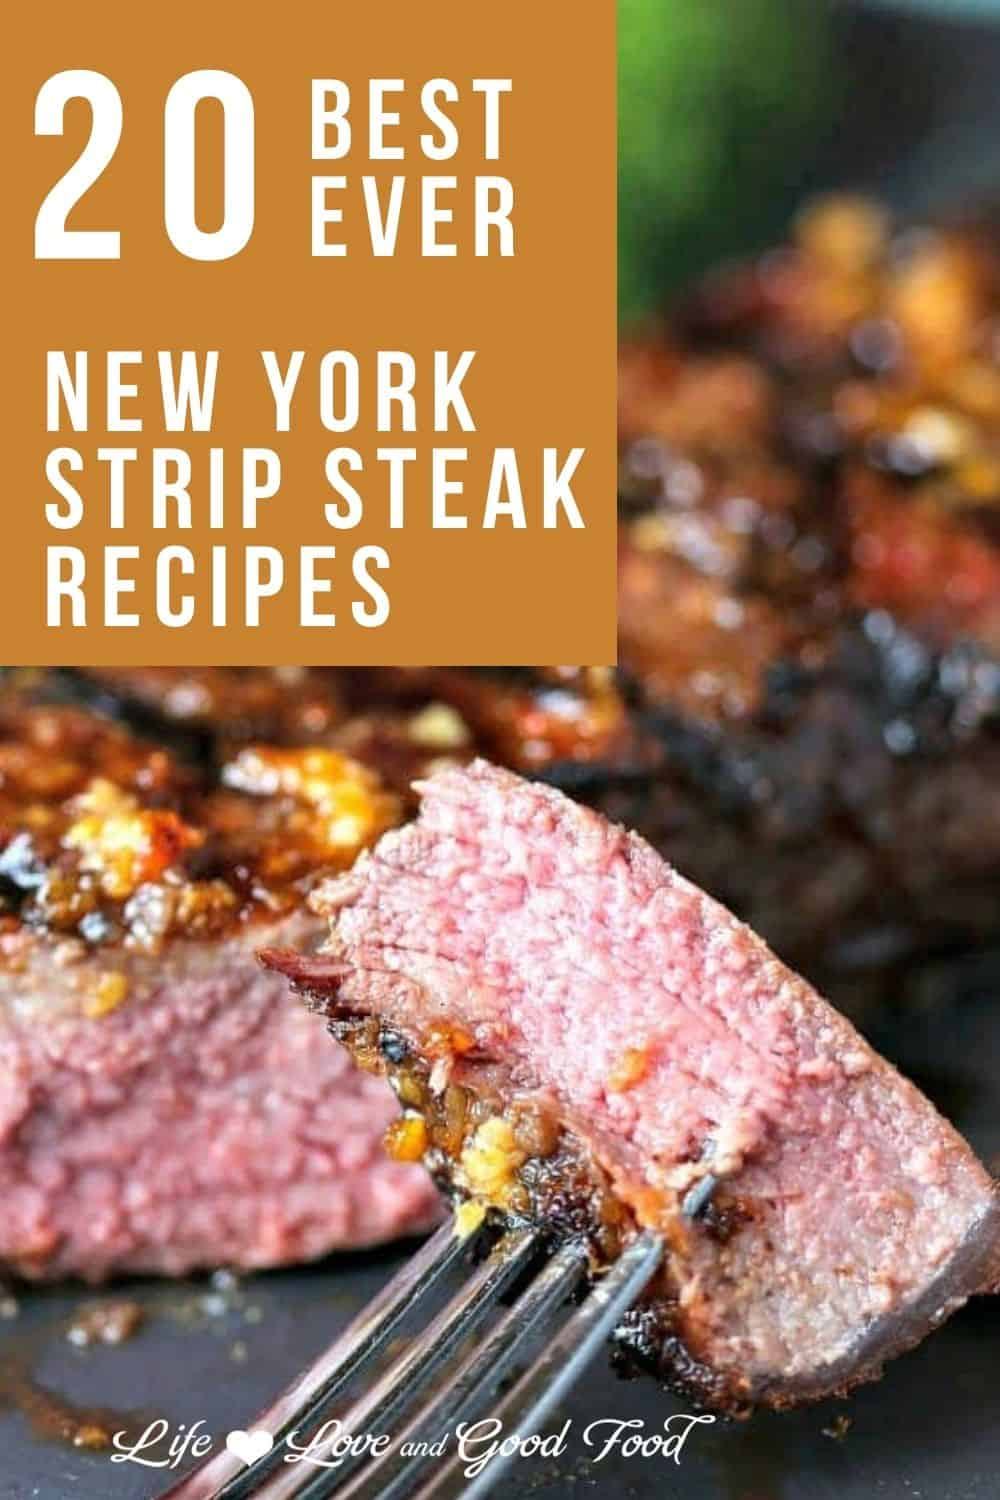 Looking for a good way to cook a New York strip steak? We have all the answers in this collection of the 20 BEST EVER New York Strip Steak Recipes. Learn all the secrets to cooking the perfect New York strip on the grill, on the stove, in the oven, and even in the air fryer!